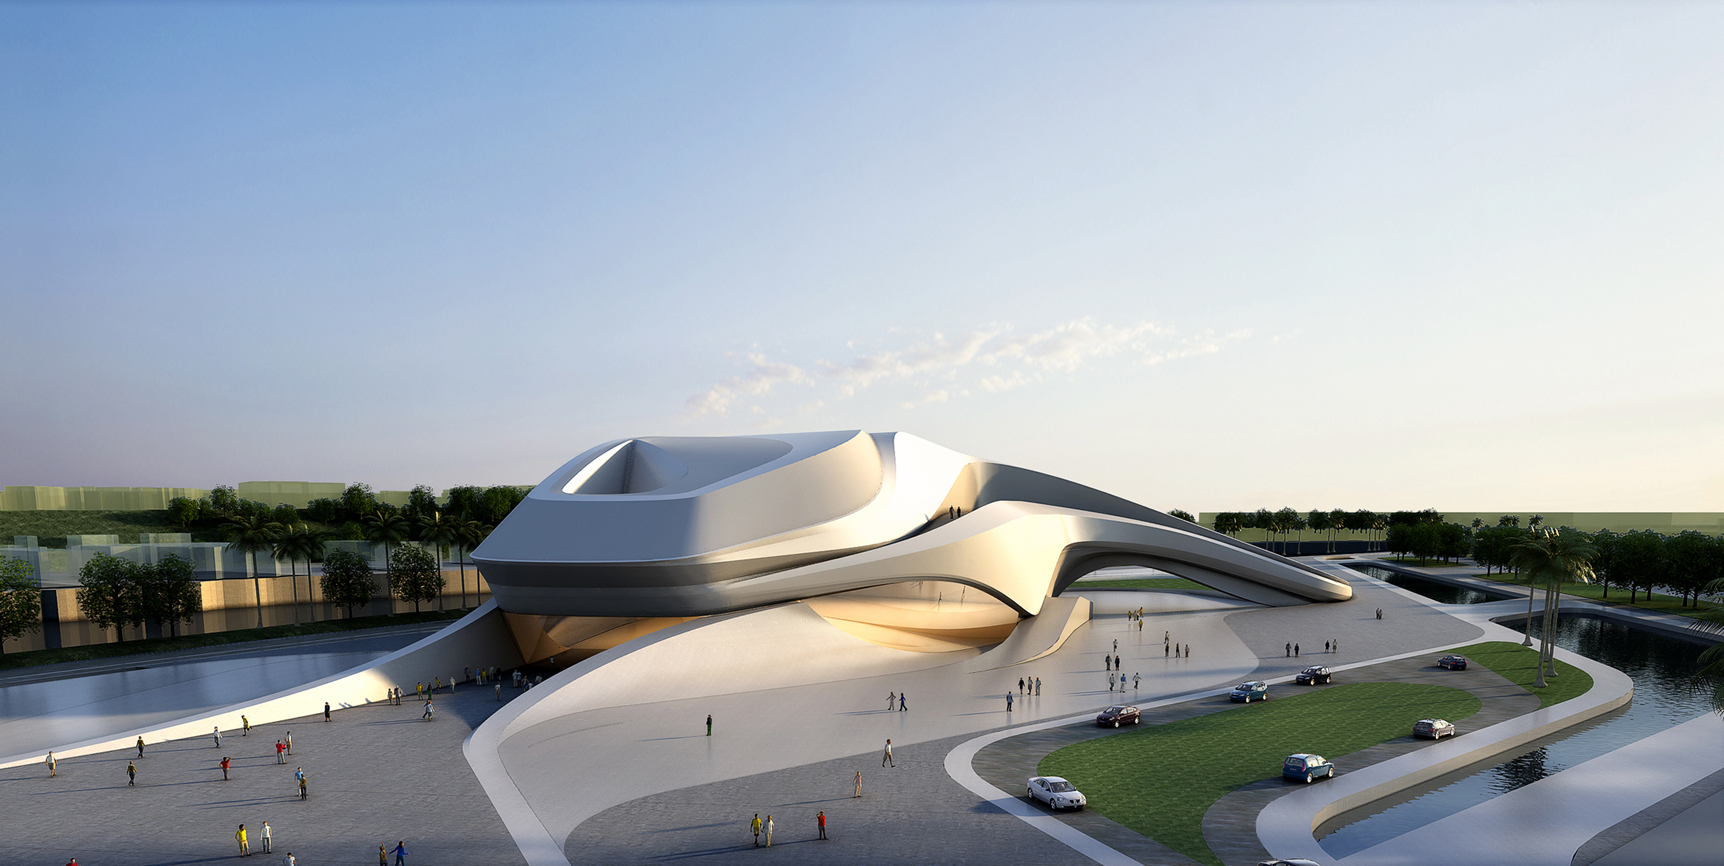 http://www.architecturelist.com/wp-content/uploads/1615_Grand-Theatre_Rabat-4-low-res.jpg